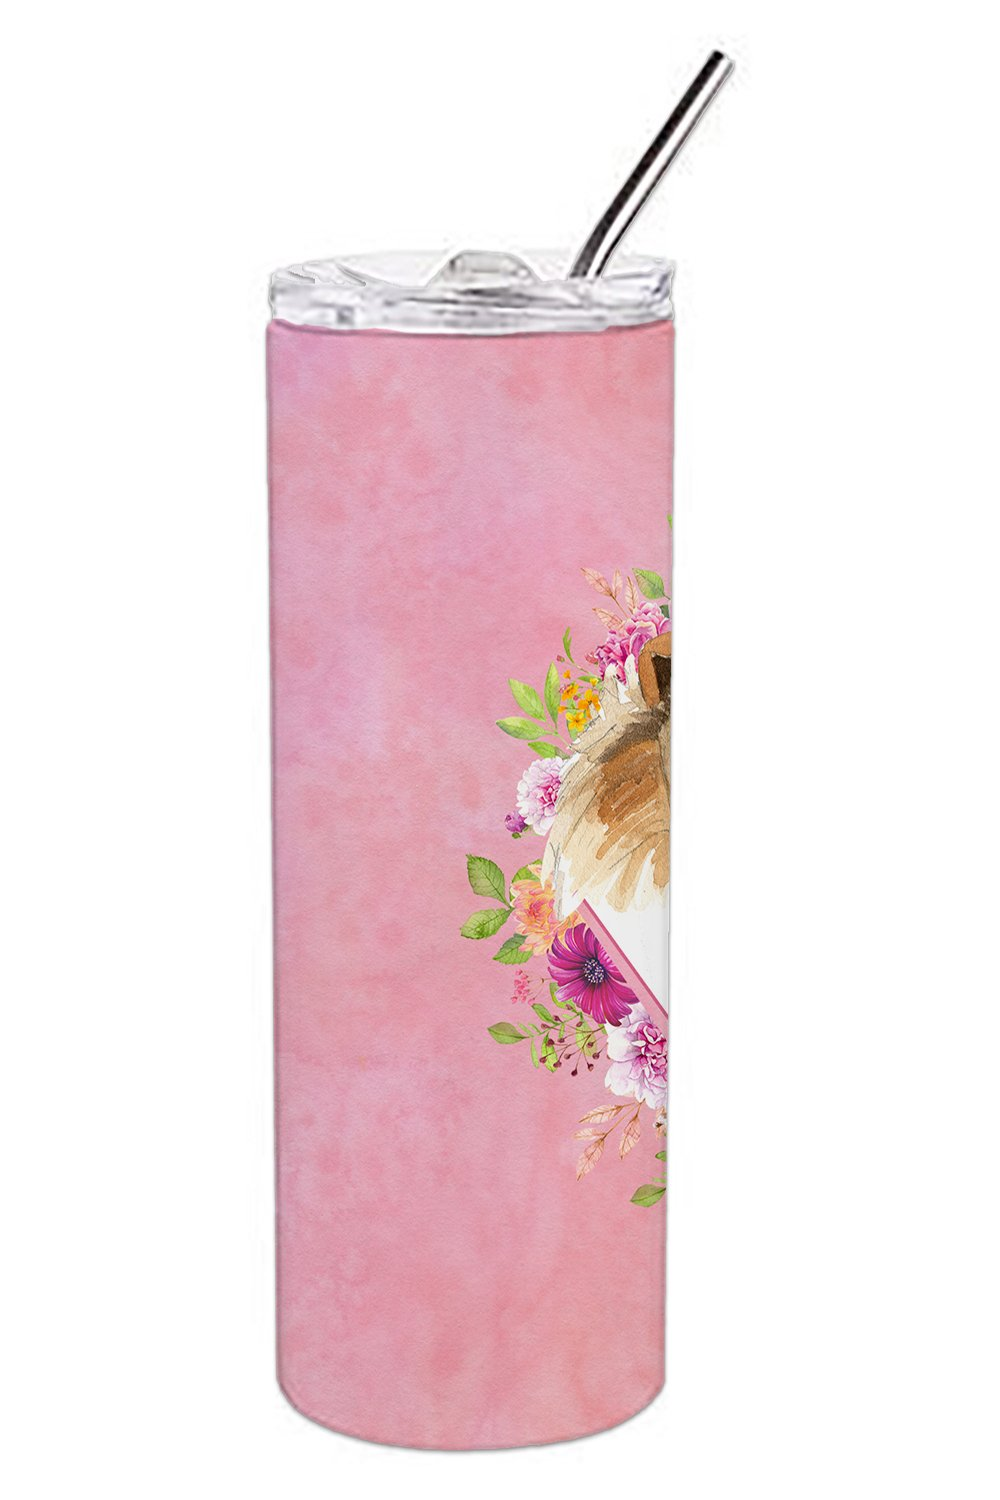 Collie Pink Flowers Double Walled Stainless Steel 20 oz Skinny Tumbler CK4216TBL20 by Caroline's Treasures